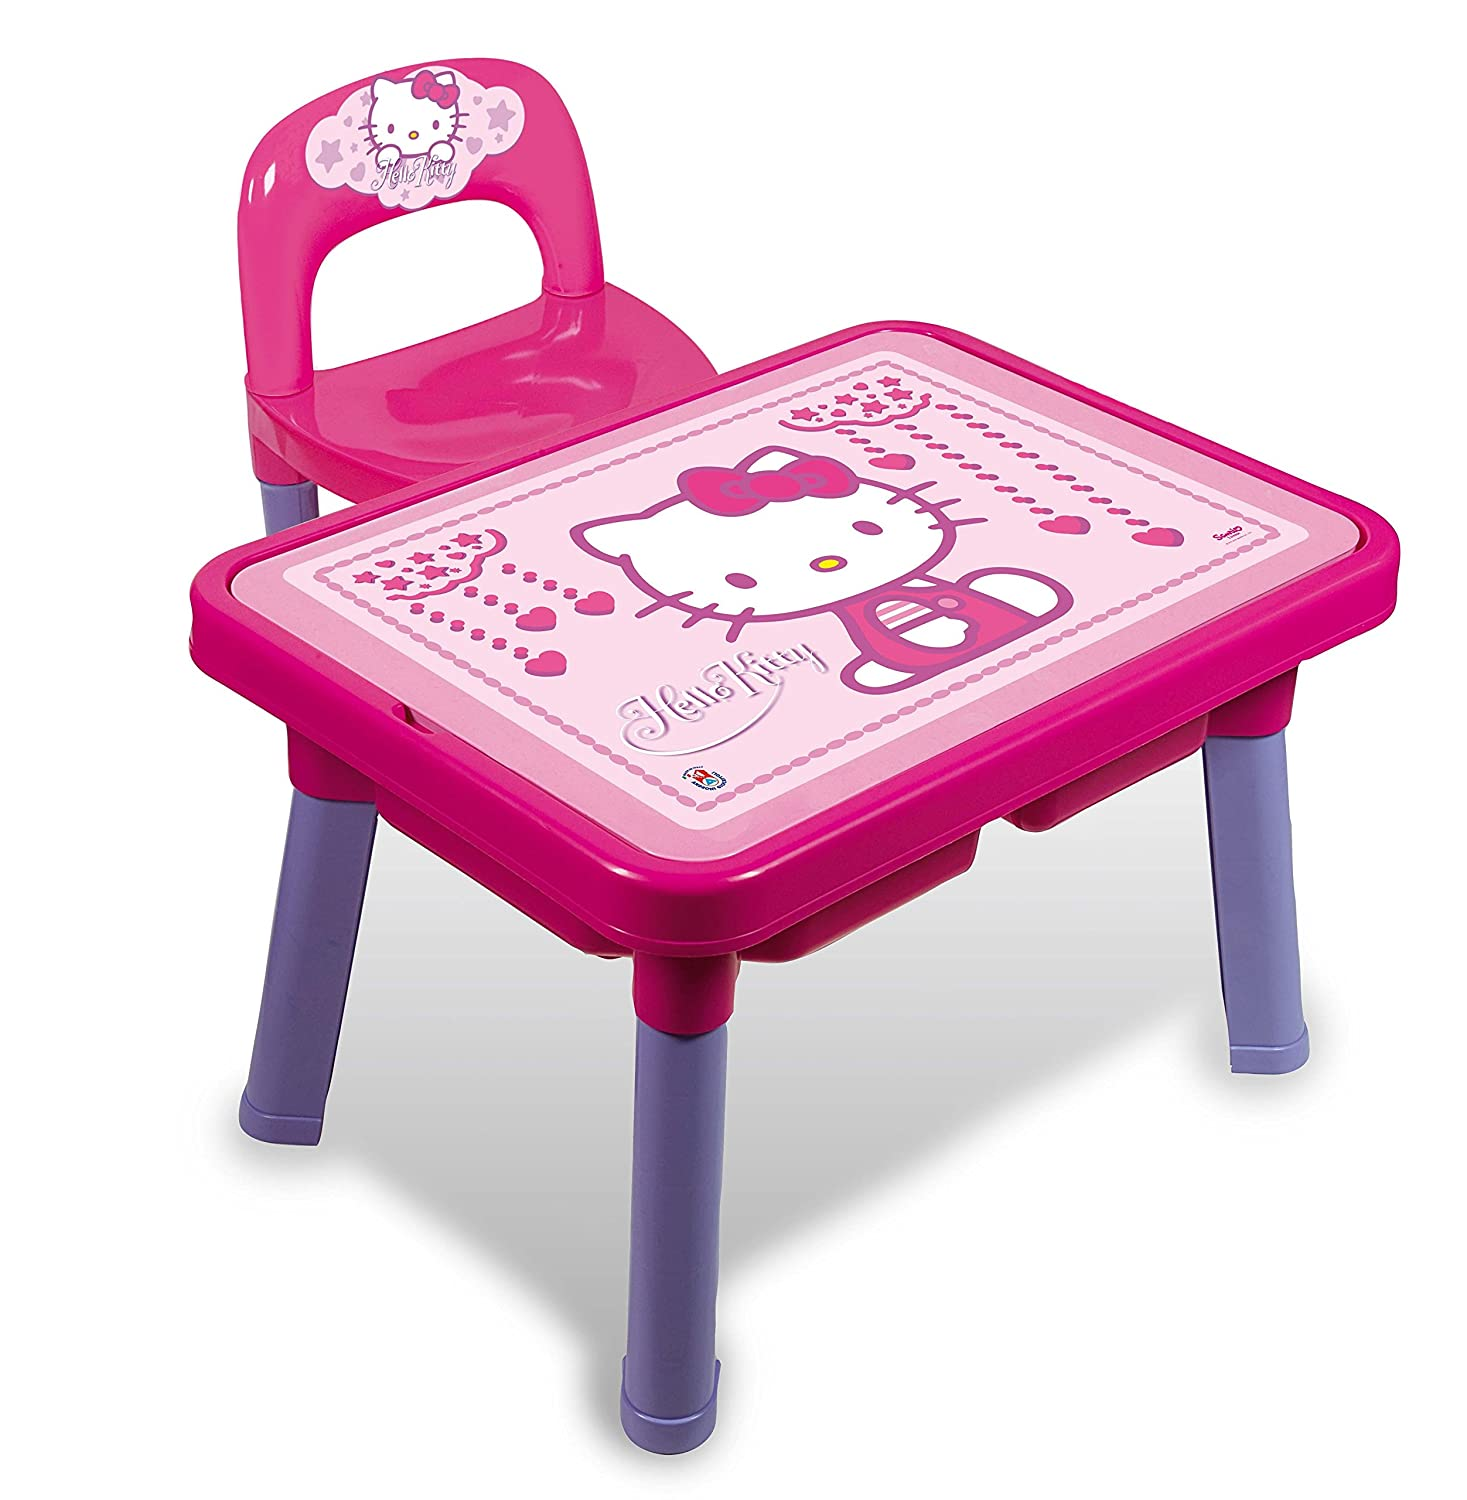 Androni HELLO KITTY - TAVOLO MULTIGIOC 8901-00HK